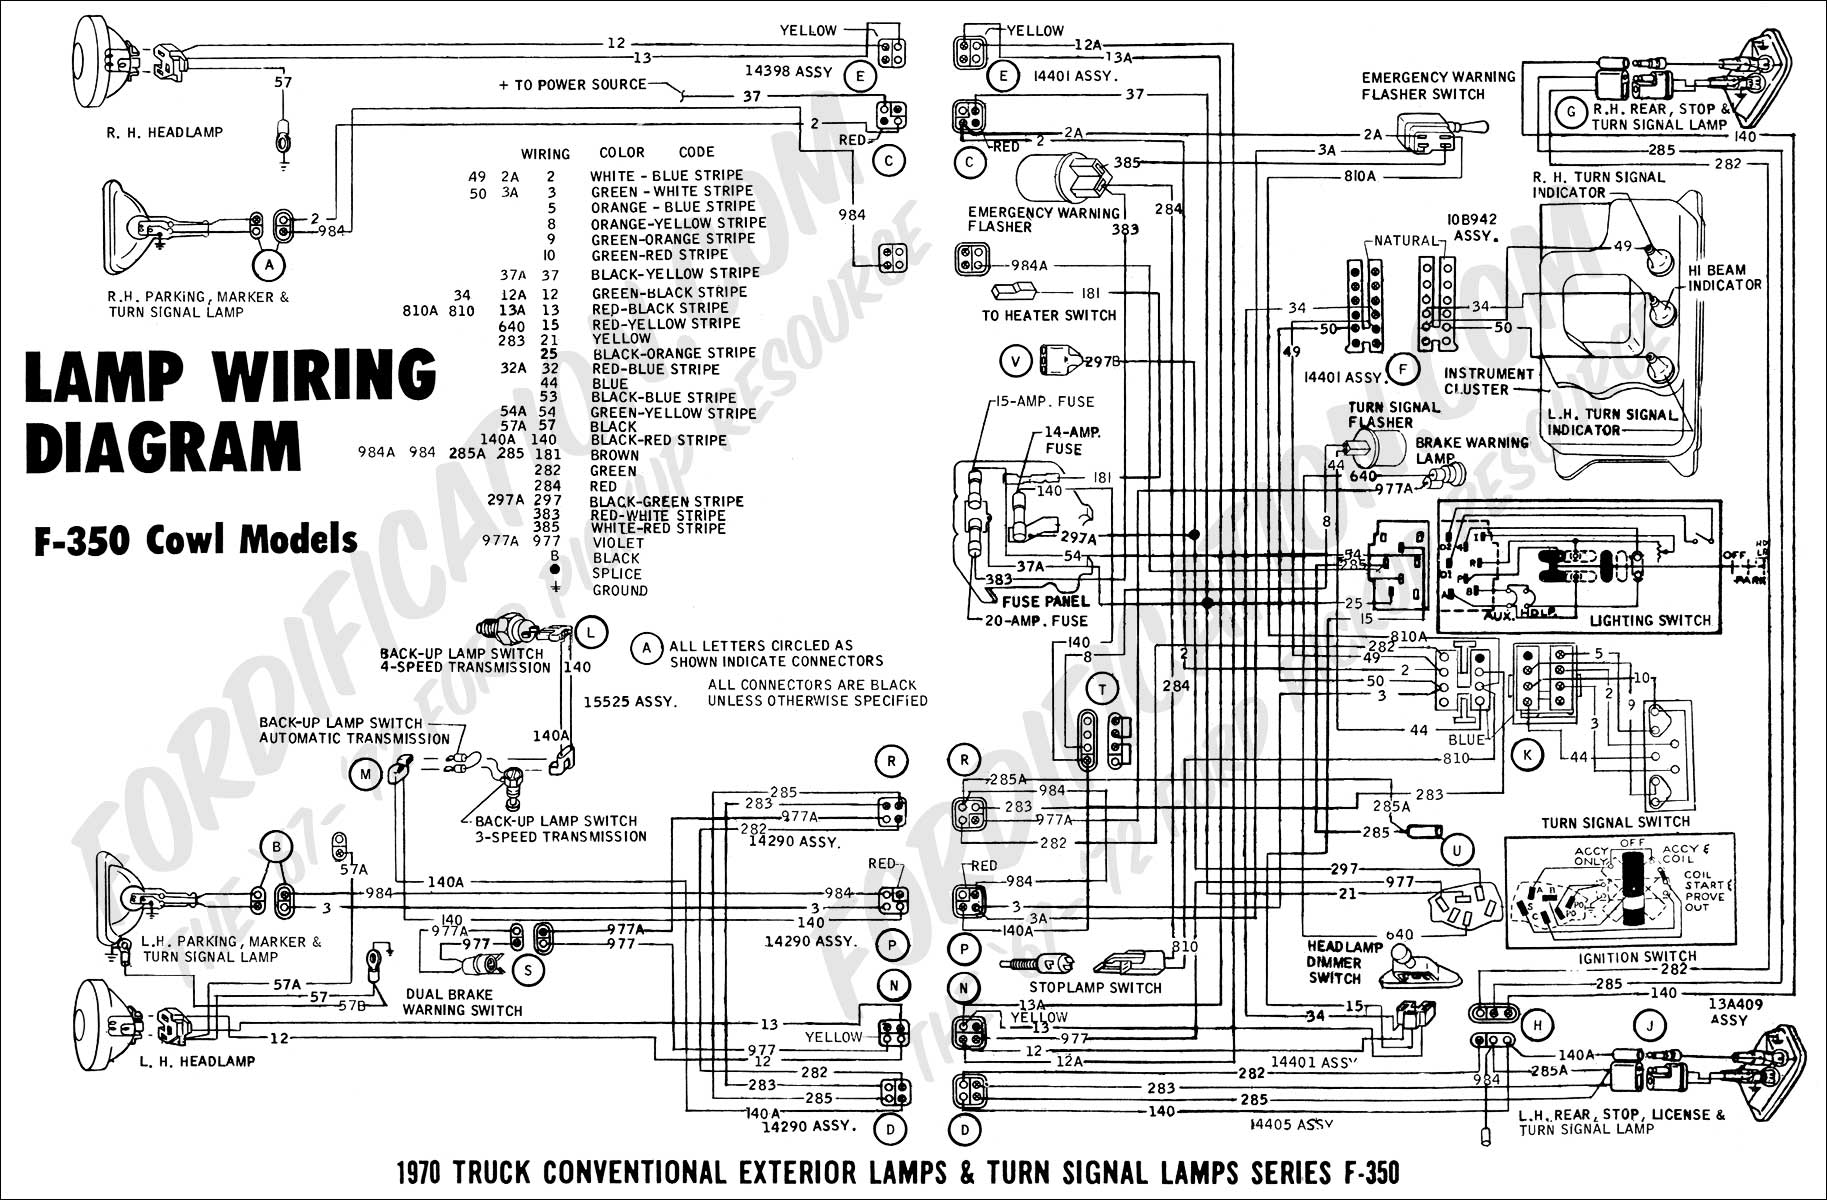 ford f650 super duty turn signal wiring diagram best wiring library  2001 ford f750 wiring schematic wiring diagram third level ford f650 quad cab 2001 ford f650